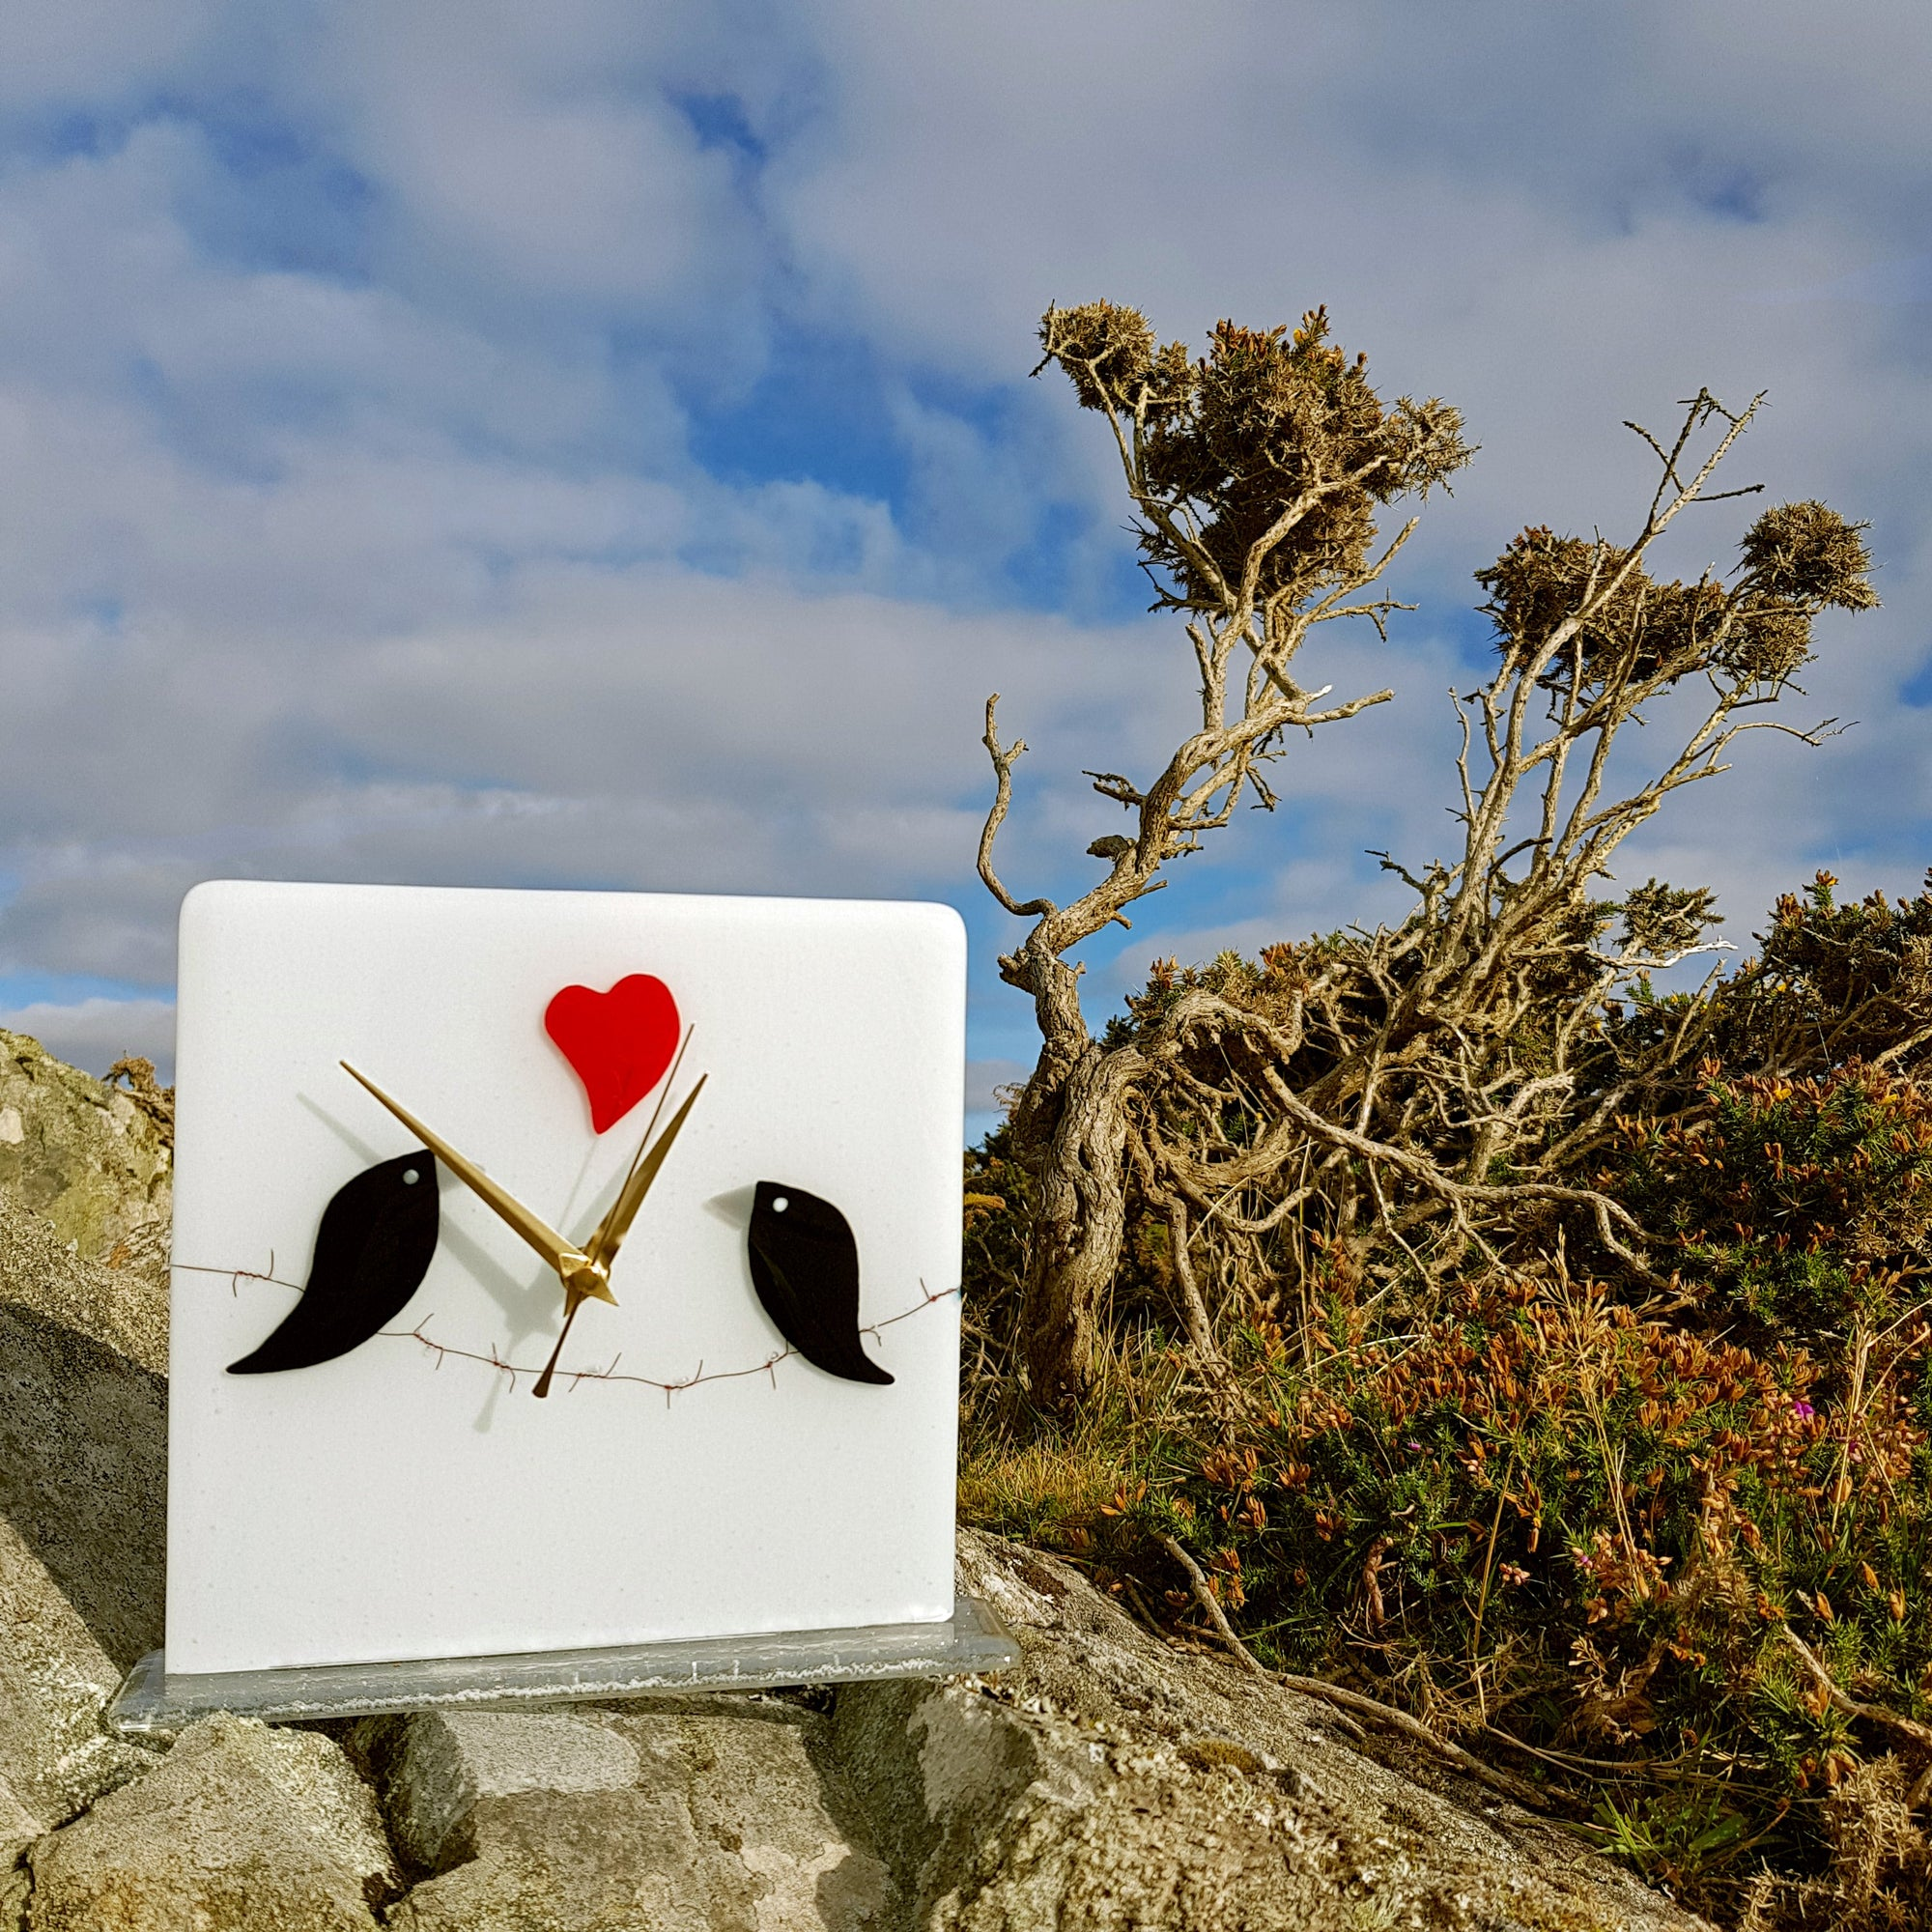 A freestanding white glass clock featuring two black birds in love, sitting on barbed wire, with a red heart motive. A lovely gift for someone special